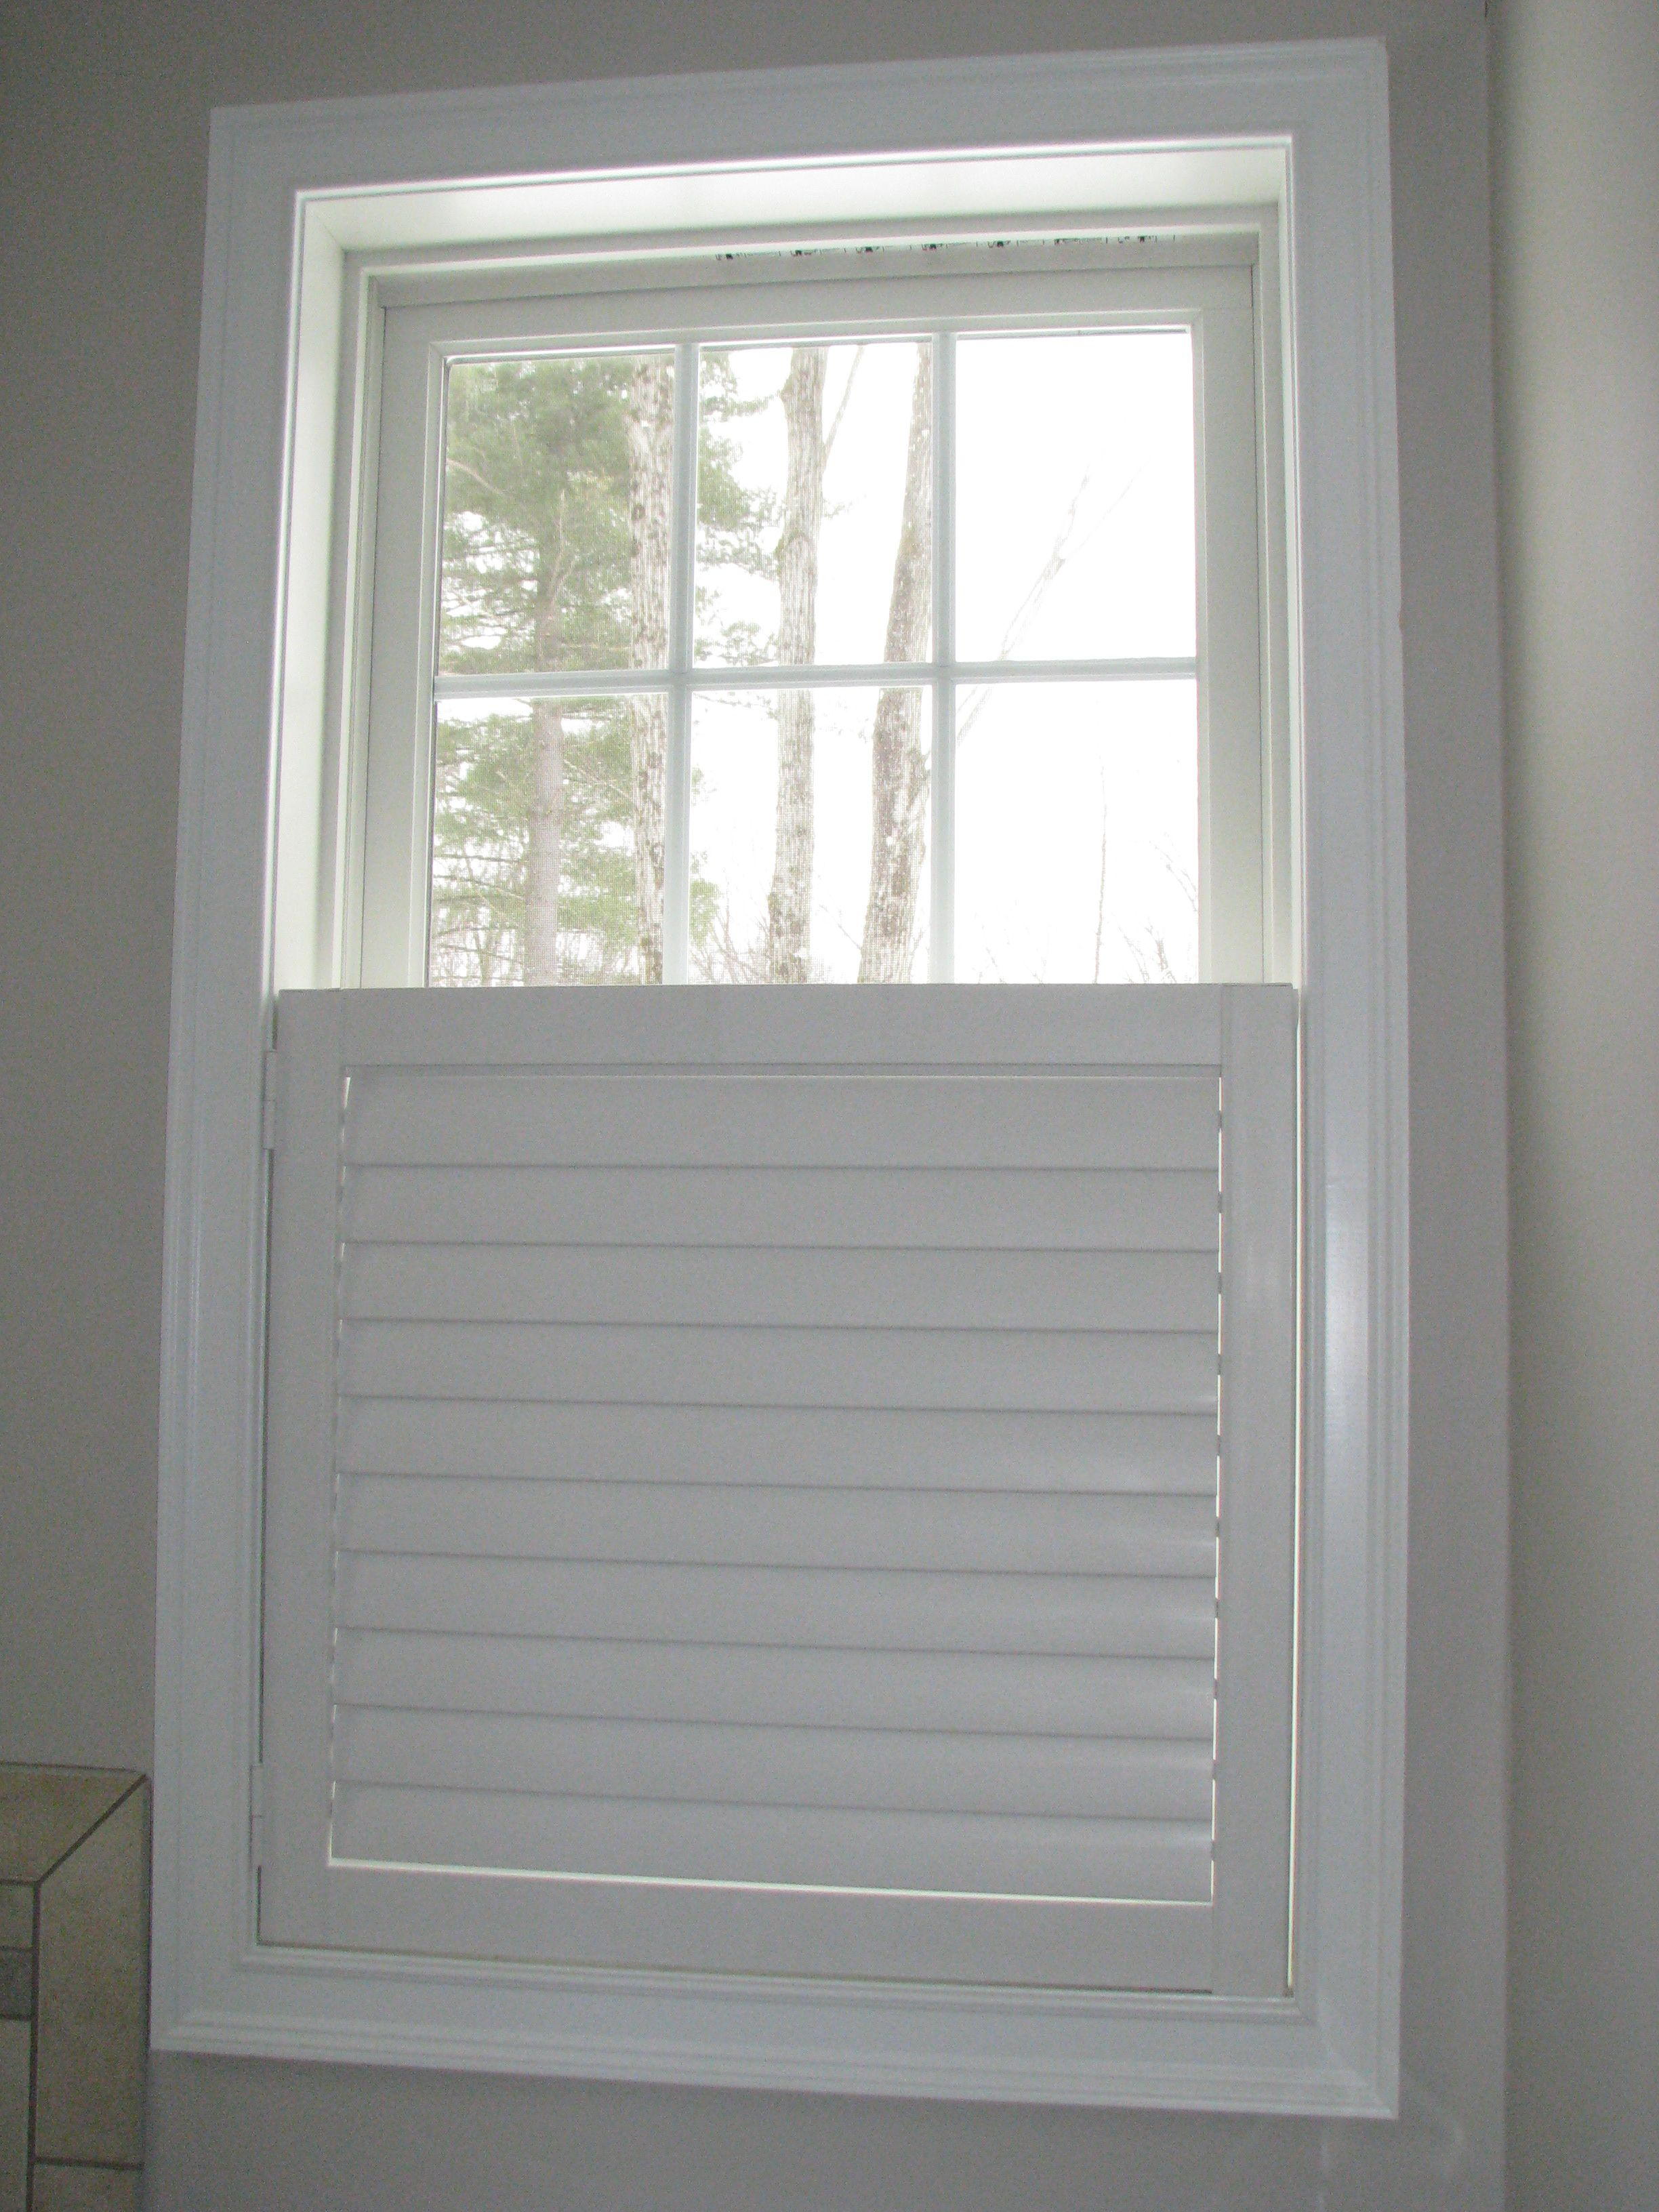 ... Beach Shutters In Café Style In A Bathroom Is The Perfect Solution  Allowing Privacy On The Bottom Half Of The Window. We Opted For A Single  Door Without ...